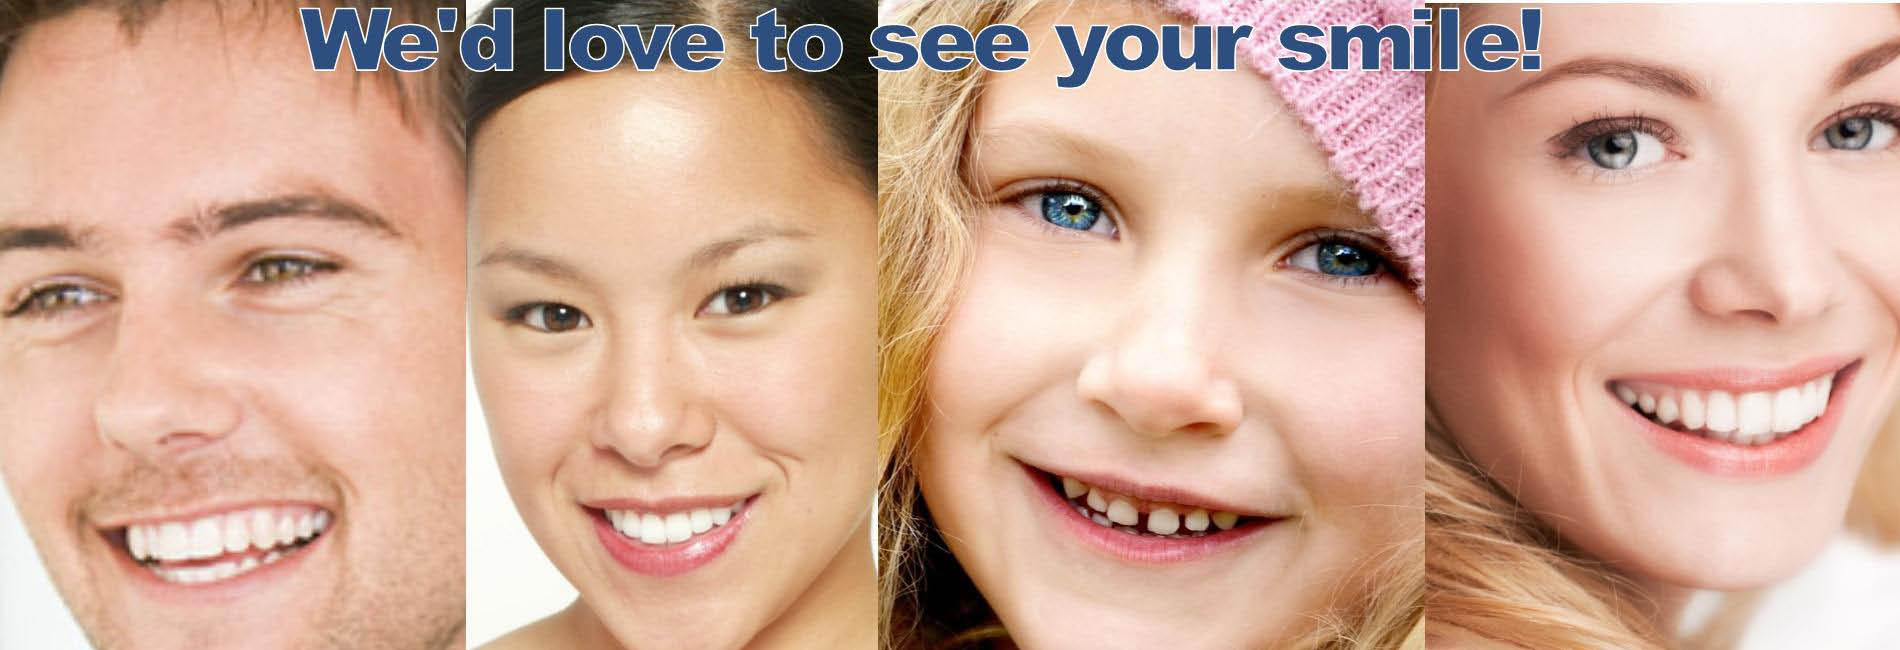 cosmetic and general dentistry in West Des Moines, Iowa